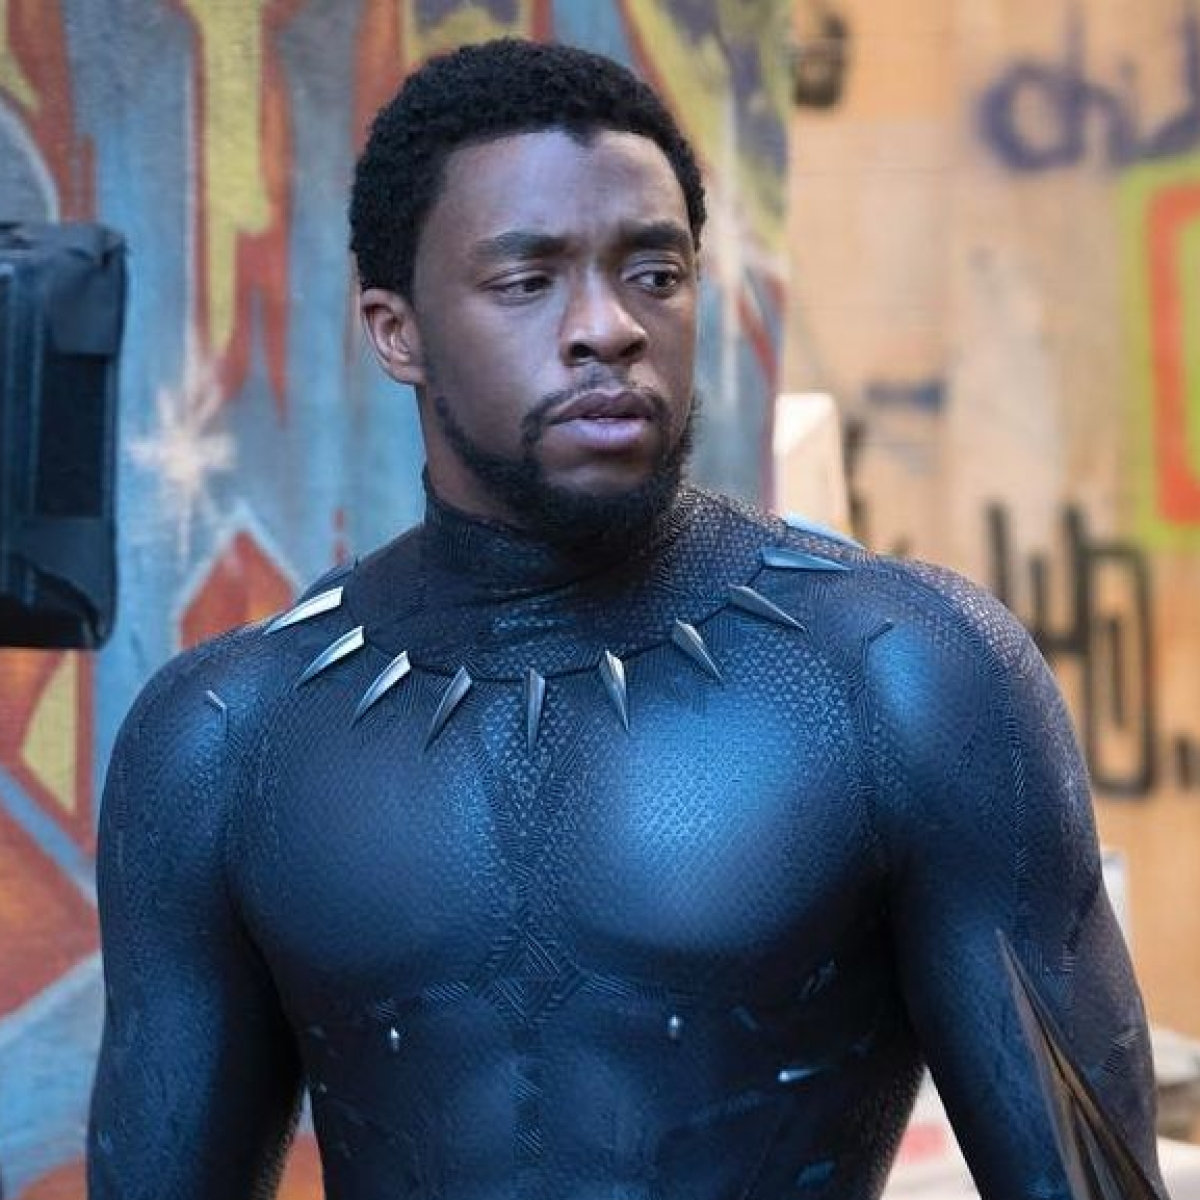 Will 'Black Panther 2' use late actor Chadwick Boseman's digital double? Details inside